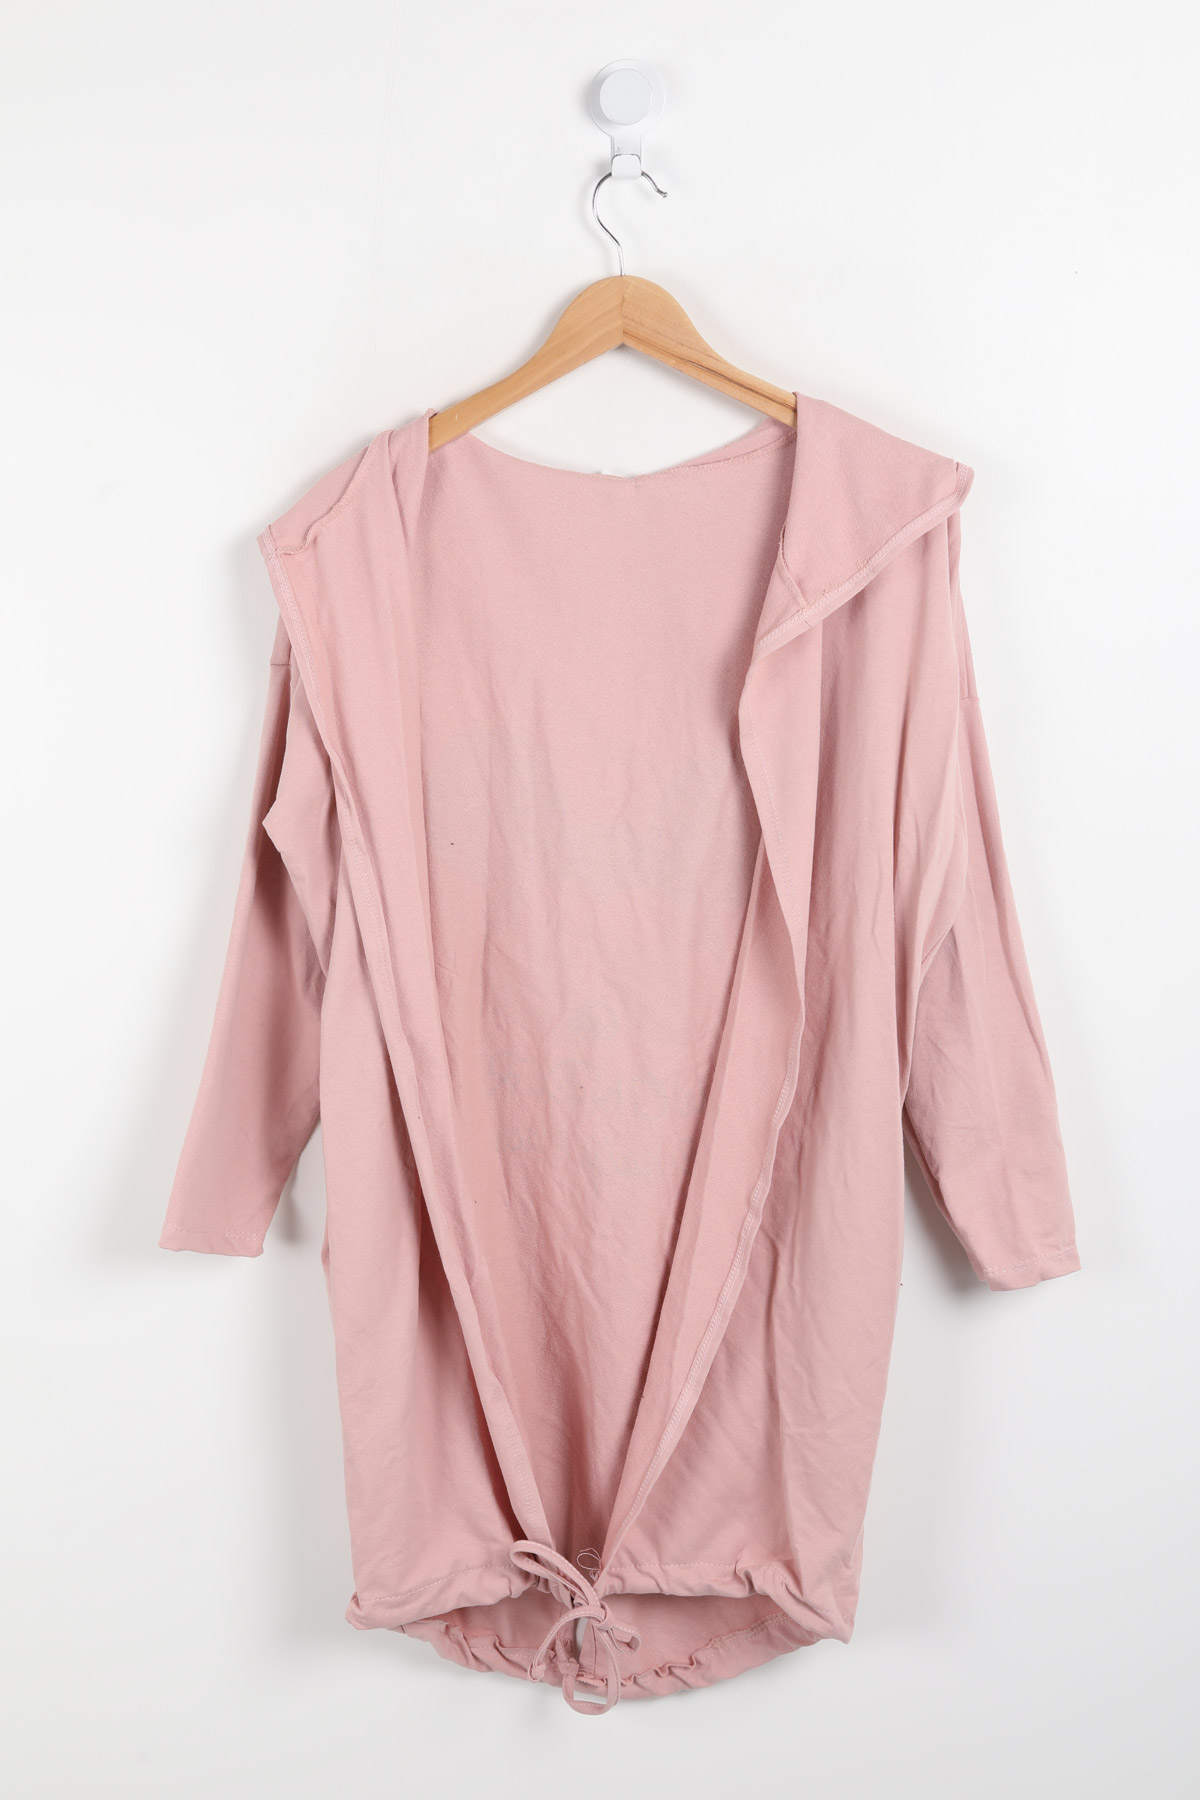 Cardigan Donna Pink Sun Love 6691 #c eFashion Paris